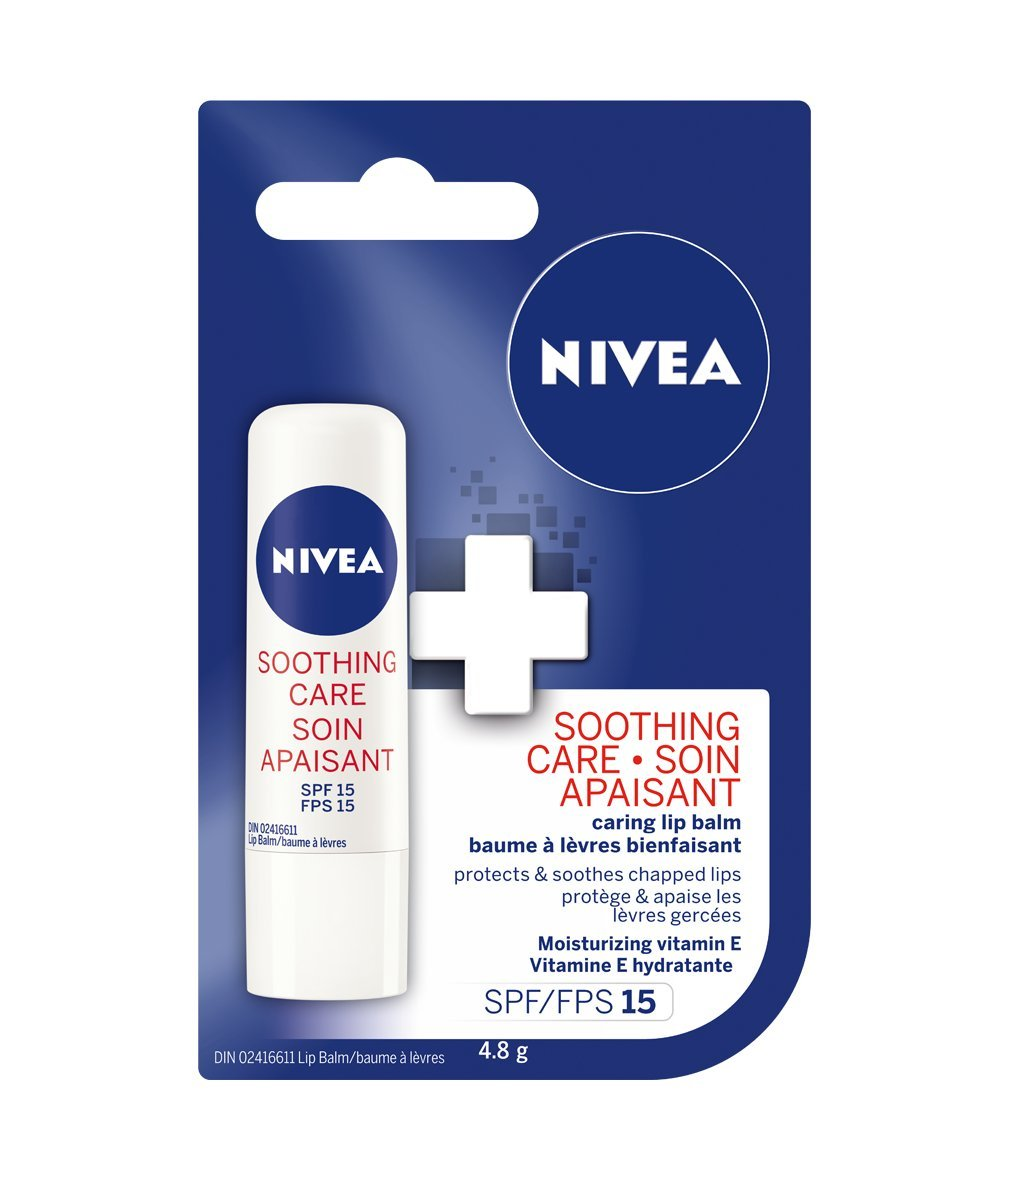 NIVEA Soothing Care Lip Balm Stick with SPF 15, 4.8 g 056594008373